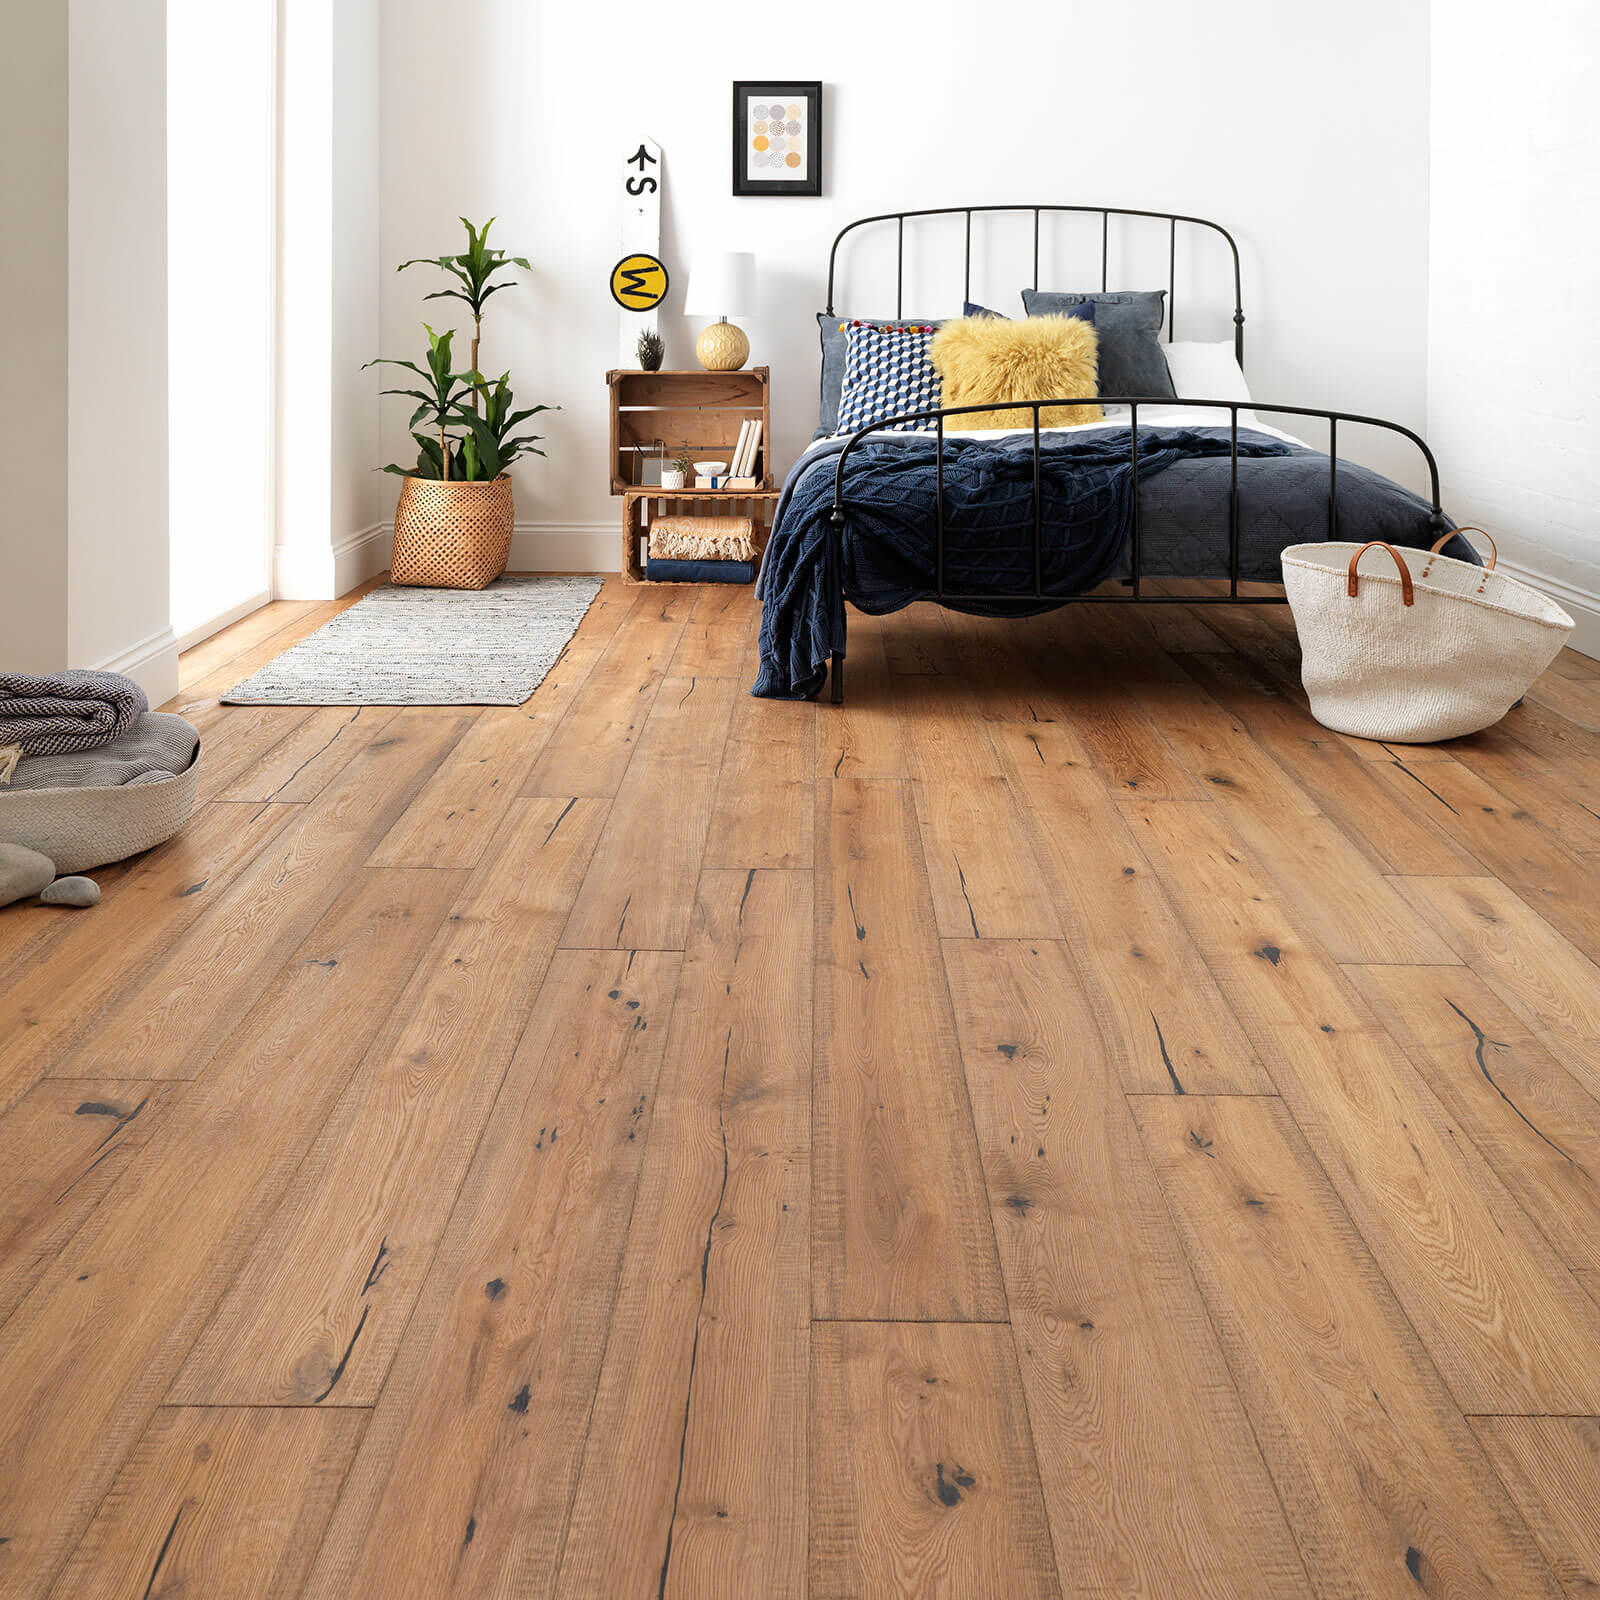 Woodpecker Berkeley Distressed Cottage Oak Oiled 38-BDW-001 Engineered Wood Flooring